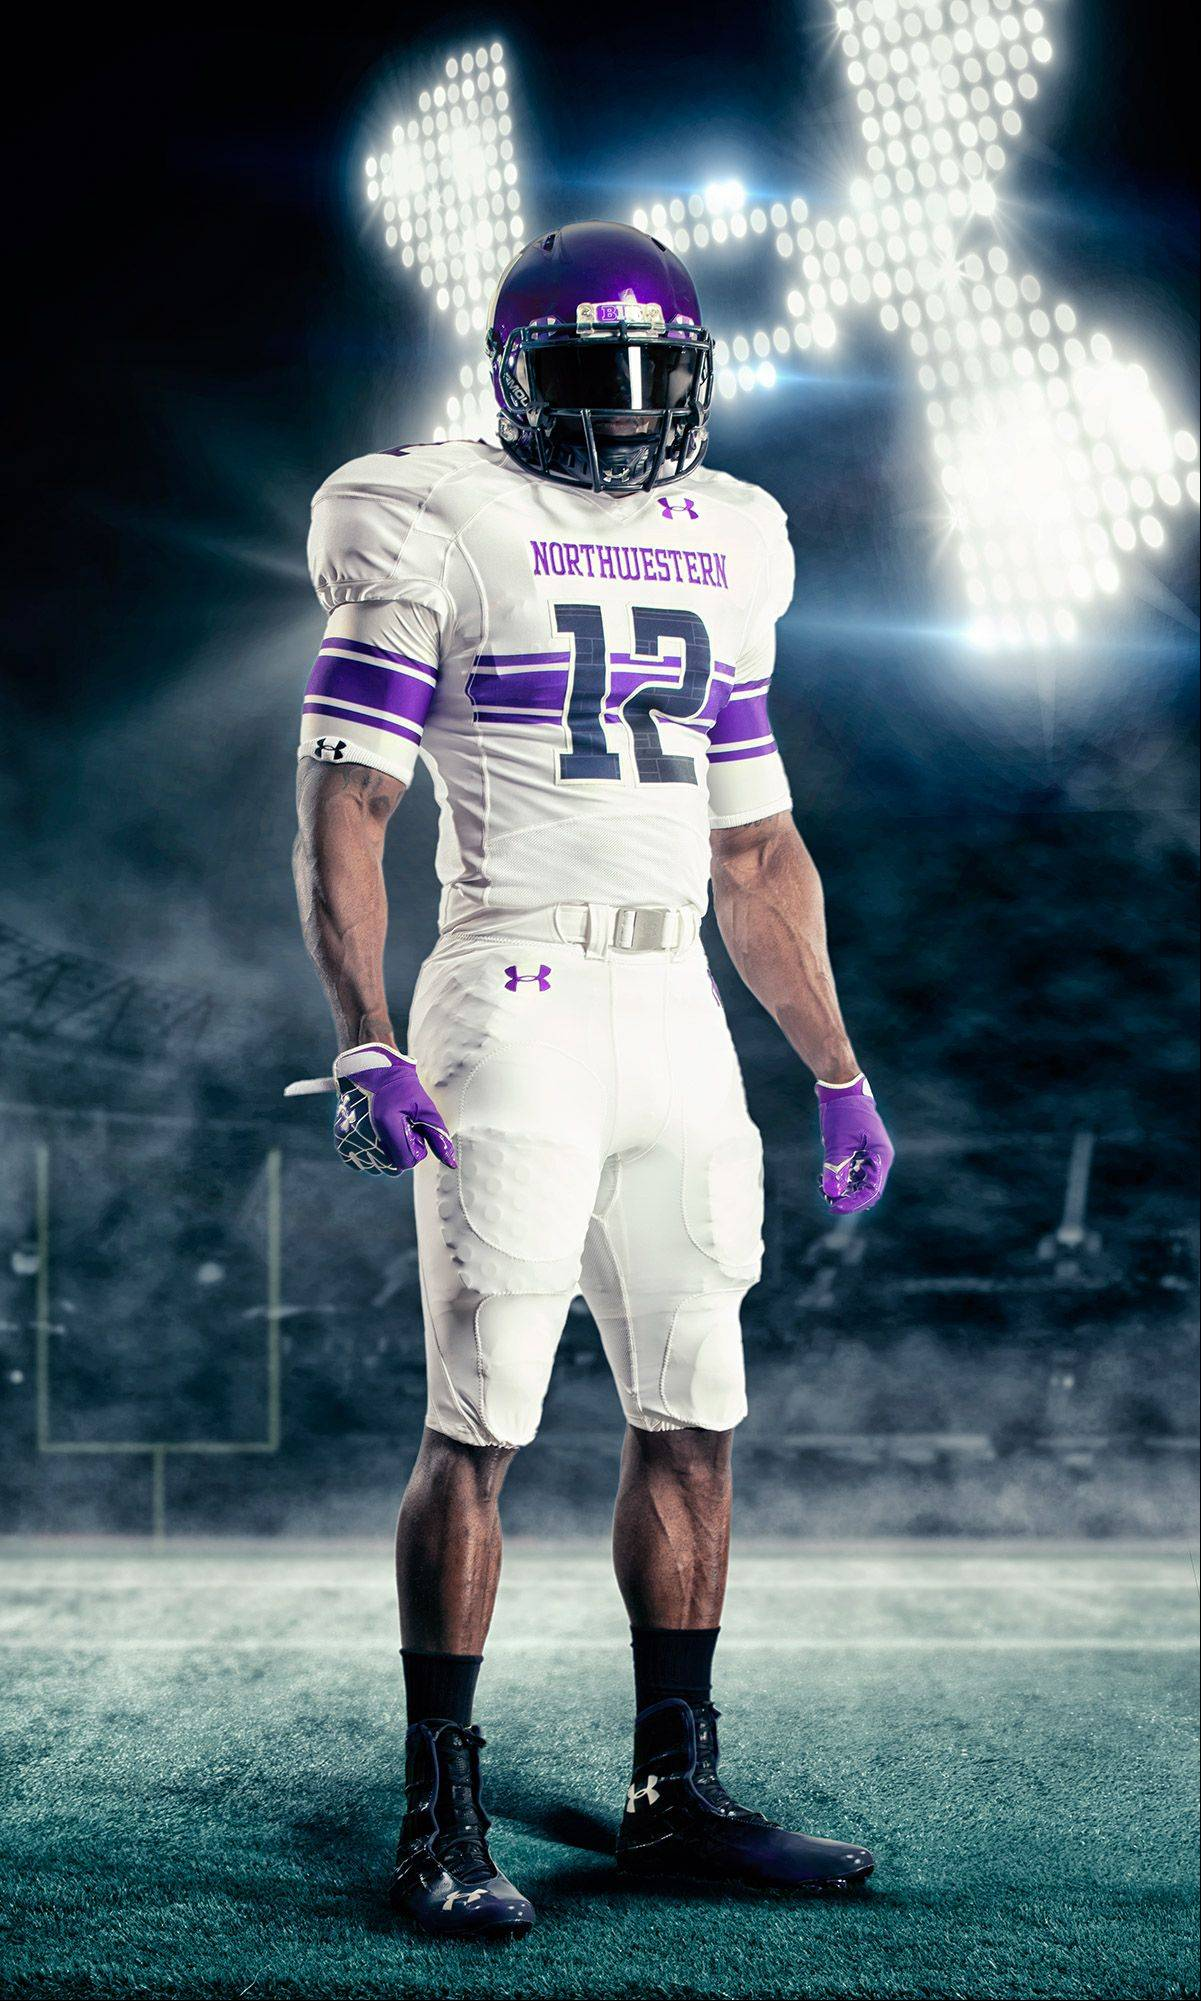 Northwestern's new uniform in partnership with Under Armor